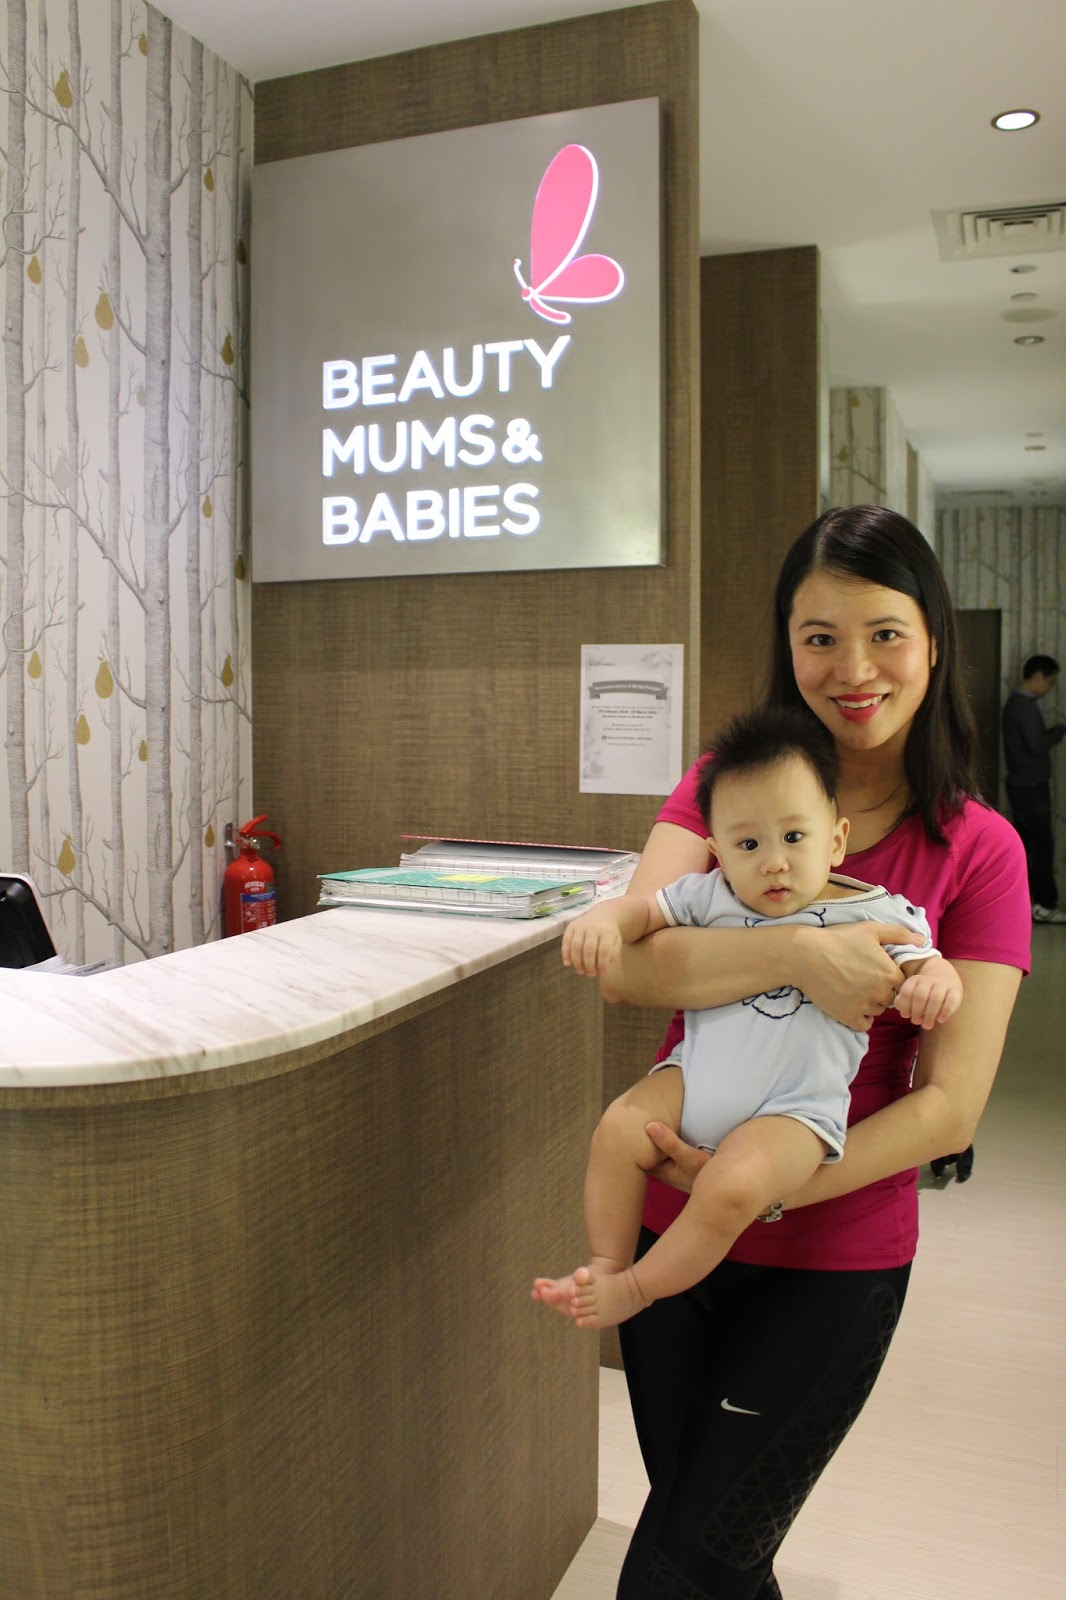 Journal of A Working Mum: Beauty, Mums & Babies - A One-Stop Wellness  Centre for Mums and Babies